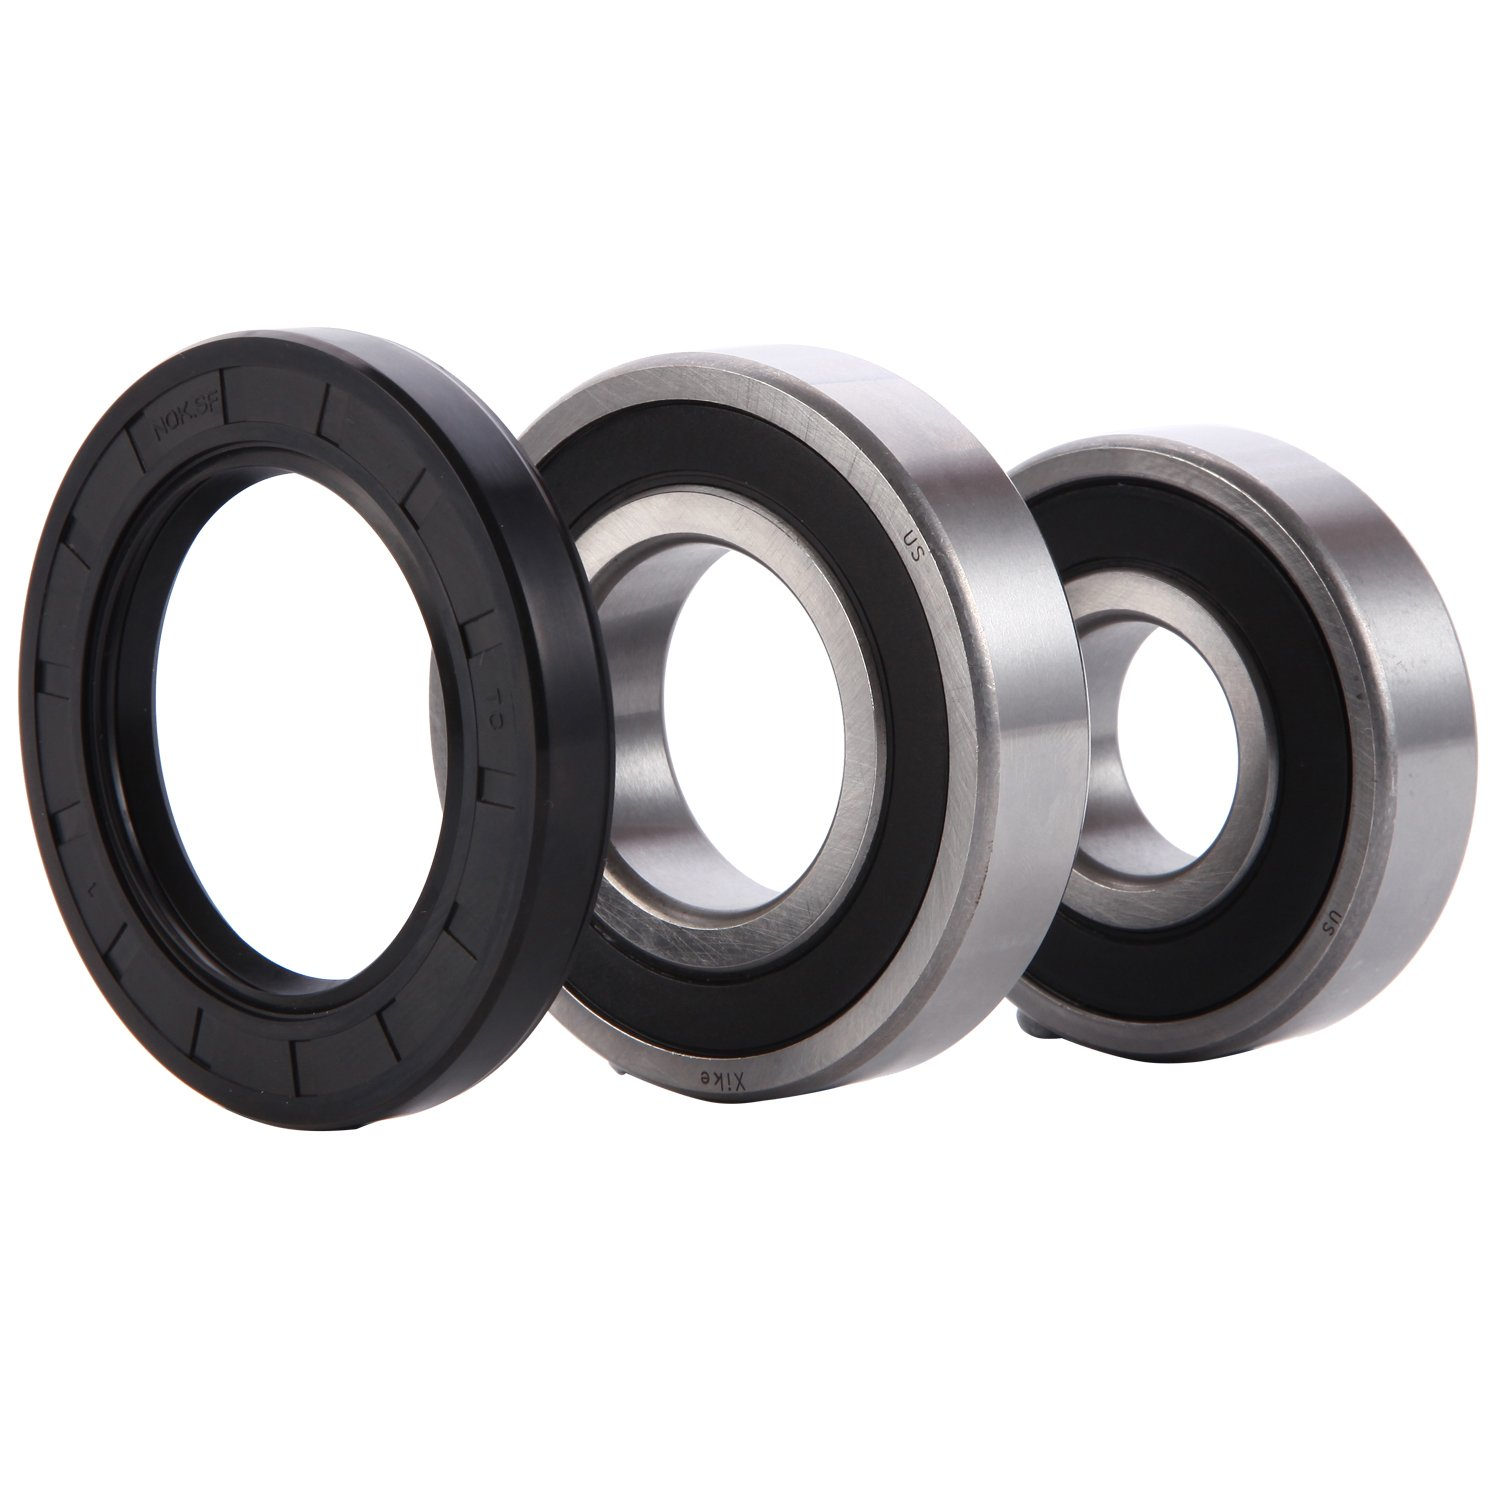 W10290562 Washer Tub Bearings and Seal Kit, Suitable for Whirlpool, Maytag, Amana, W10772619, 4164534, AH11703210, AP5972057, EA11703210, EAP11703210, W10283358.